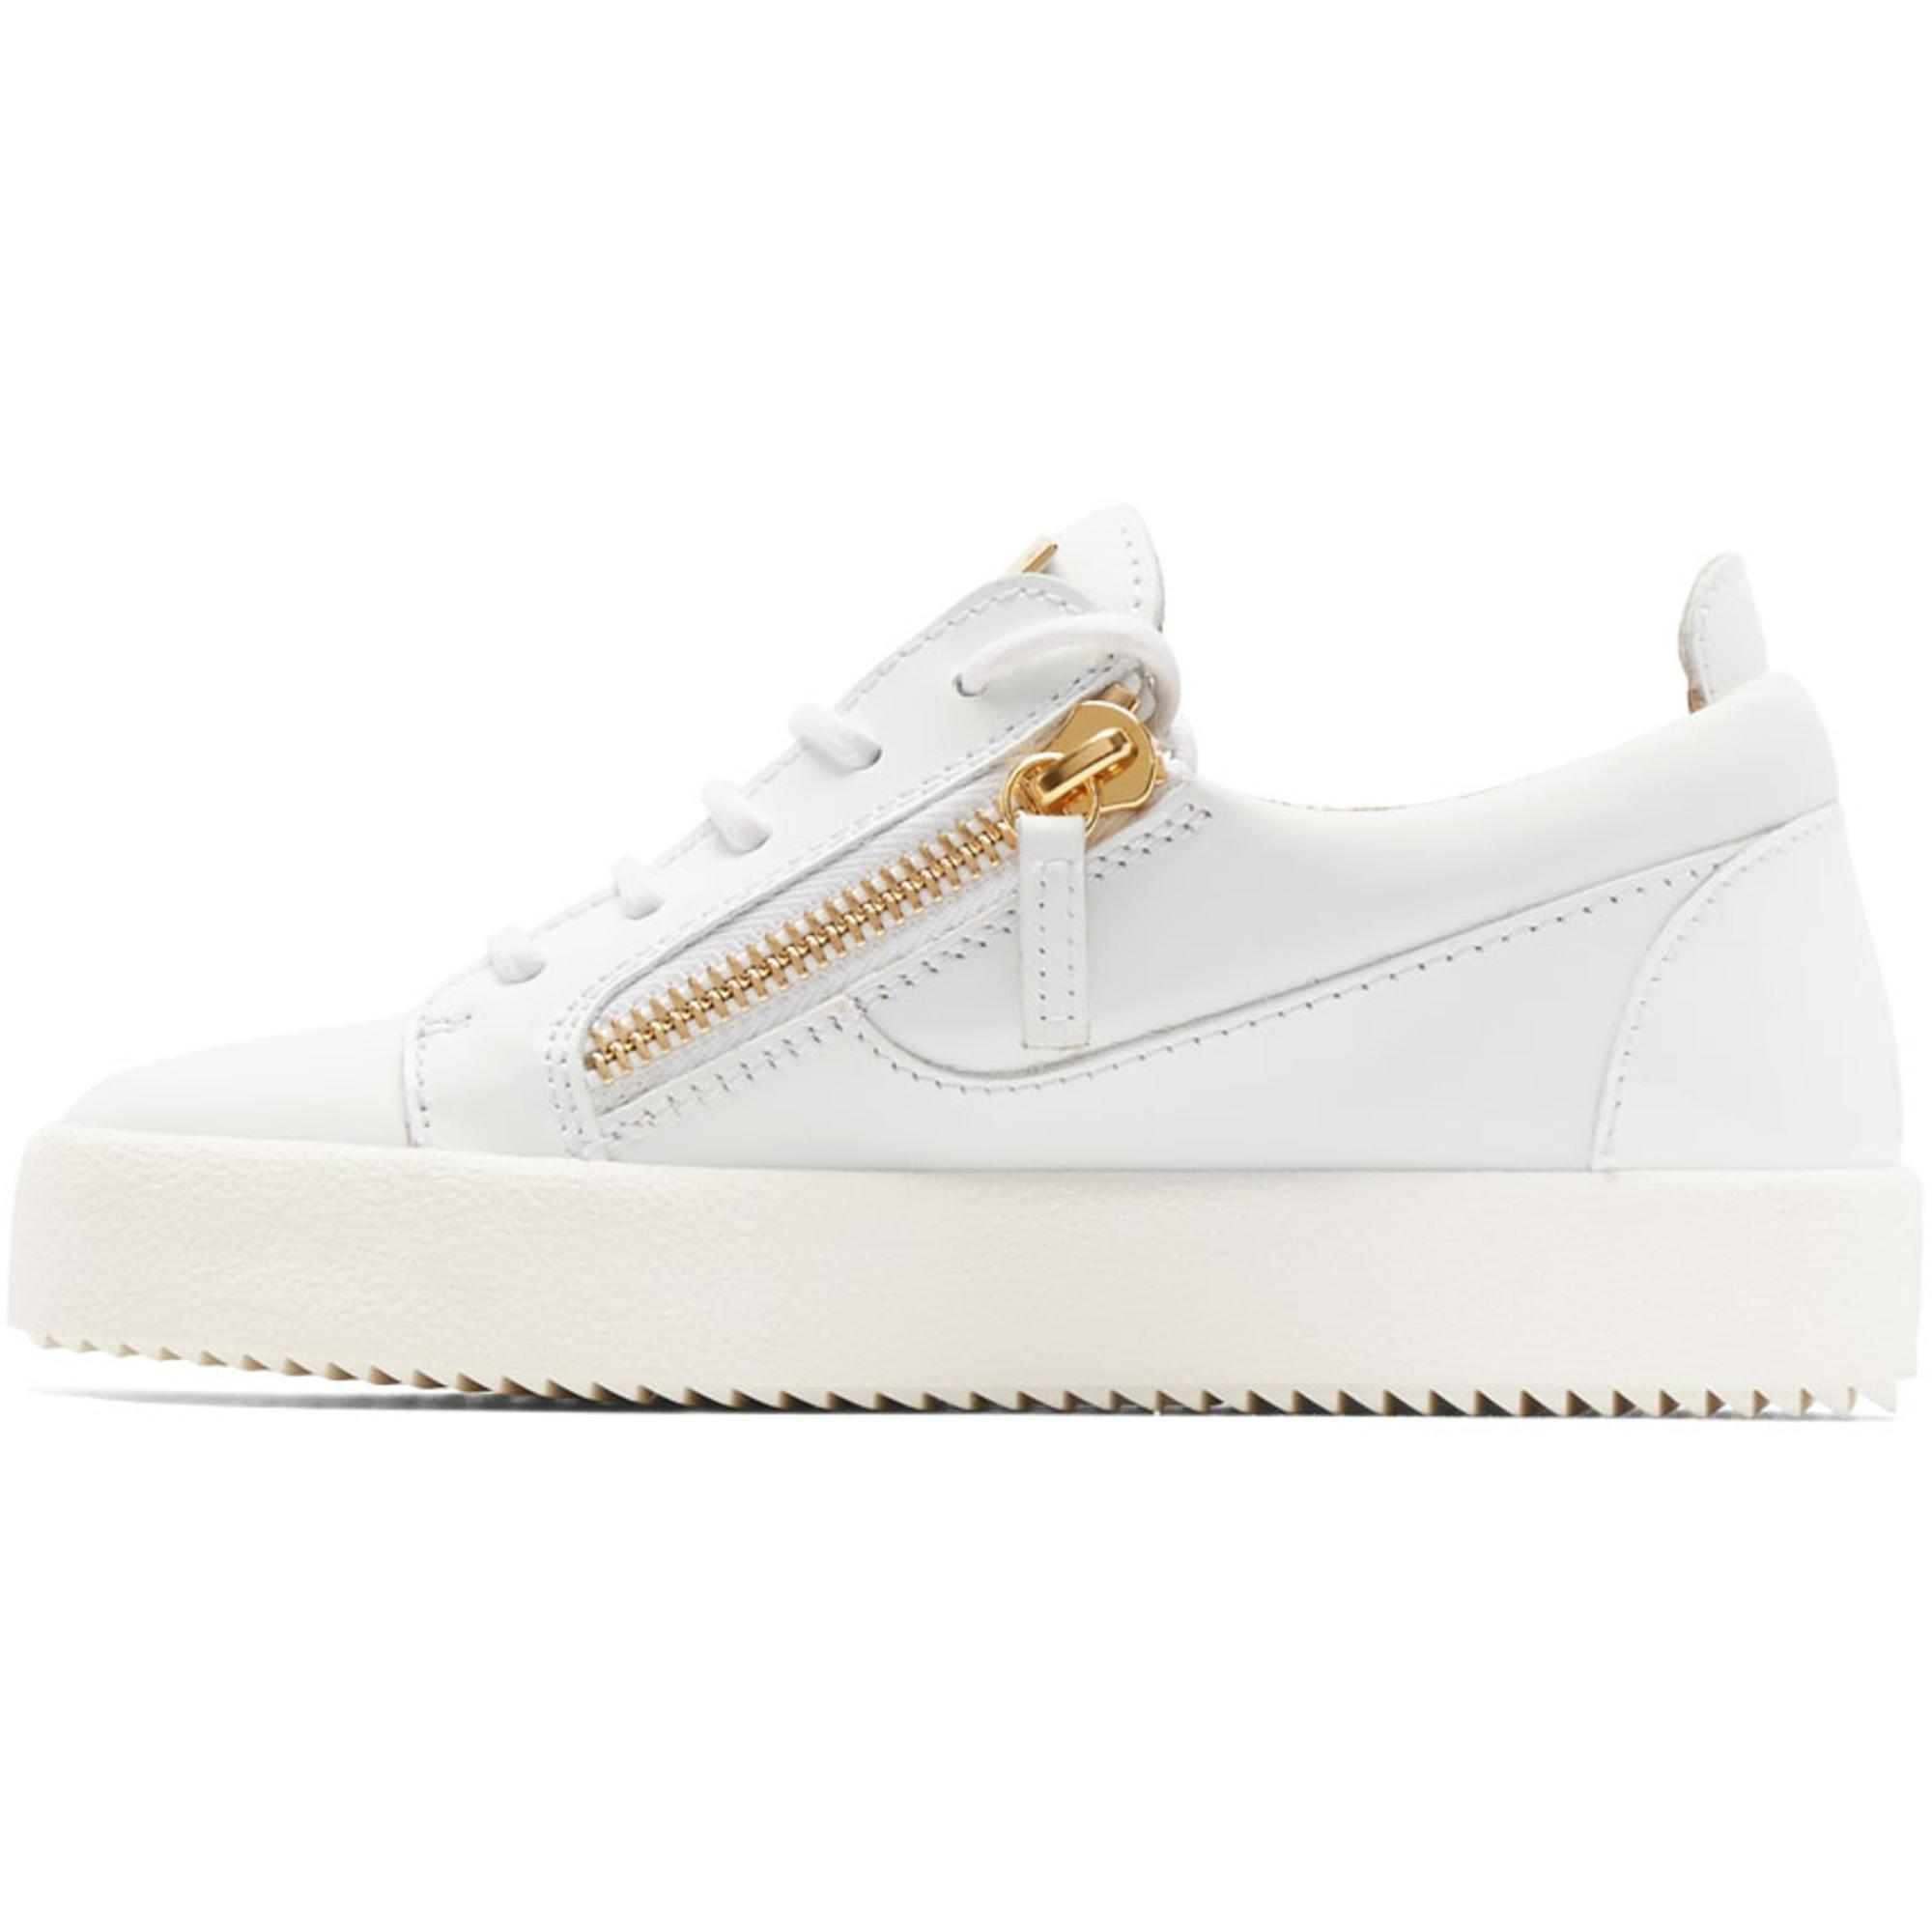 Giuseppe Zanotti White May London Velcro Sneakers eETUiH9AQ5